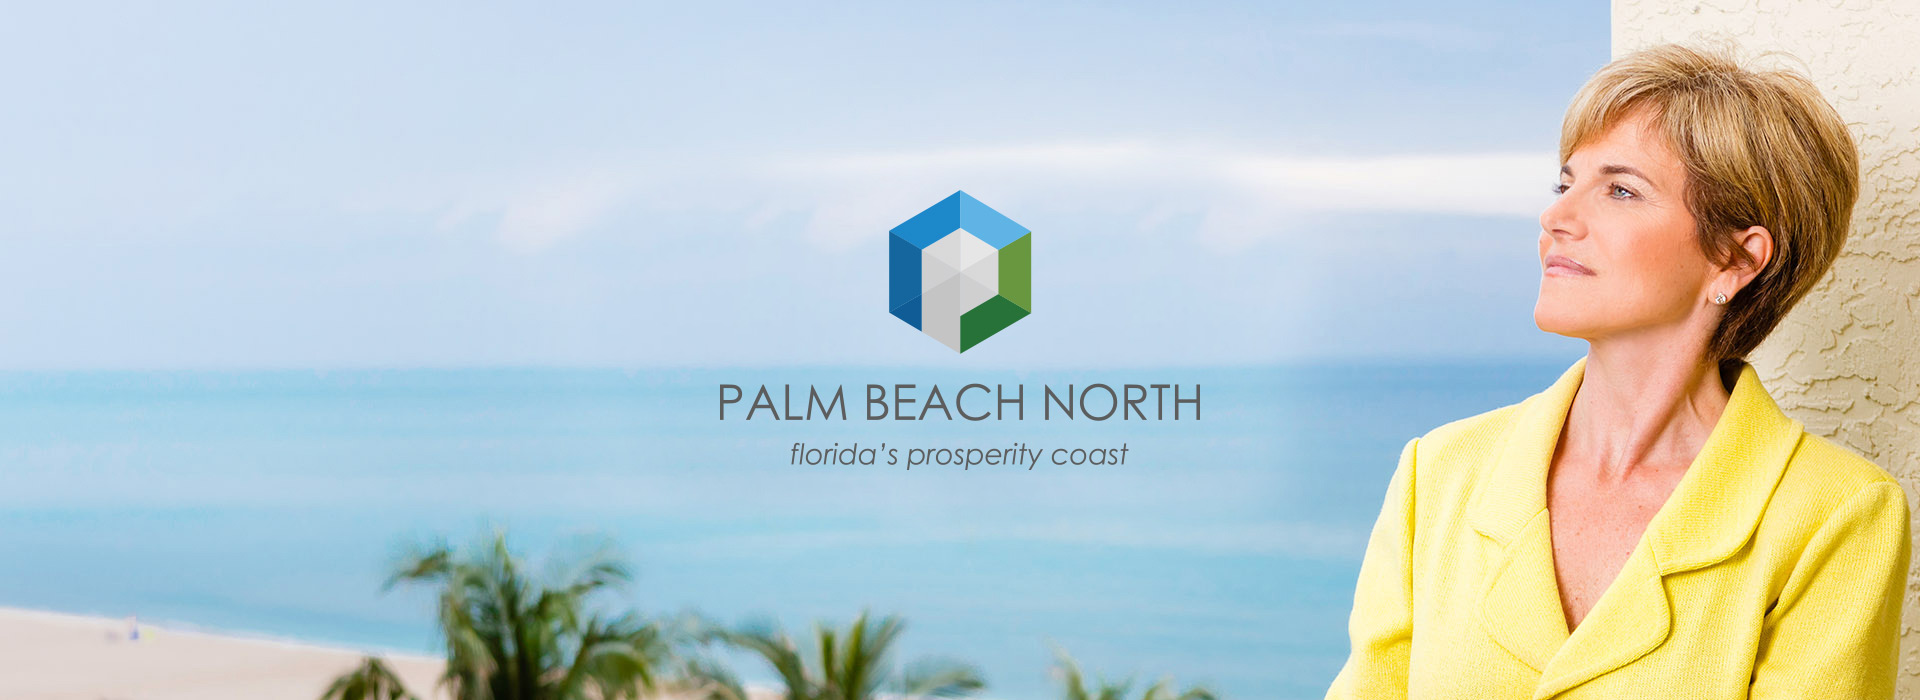 Palm Beach North Branding 10 Communities in Northern Palm Beach County